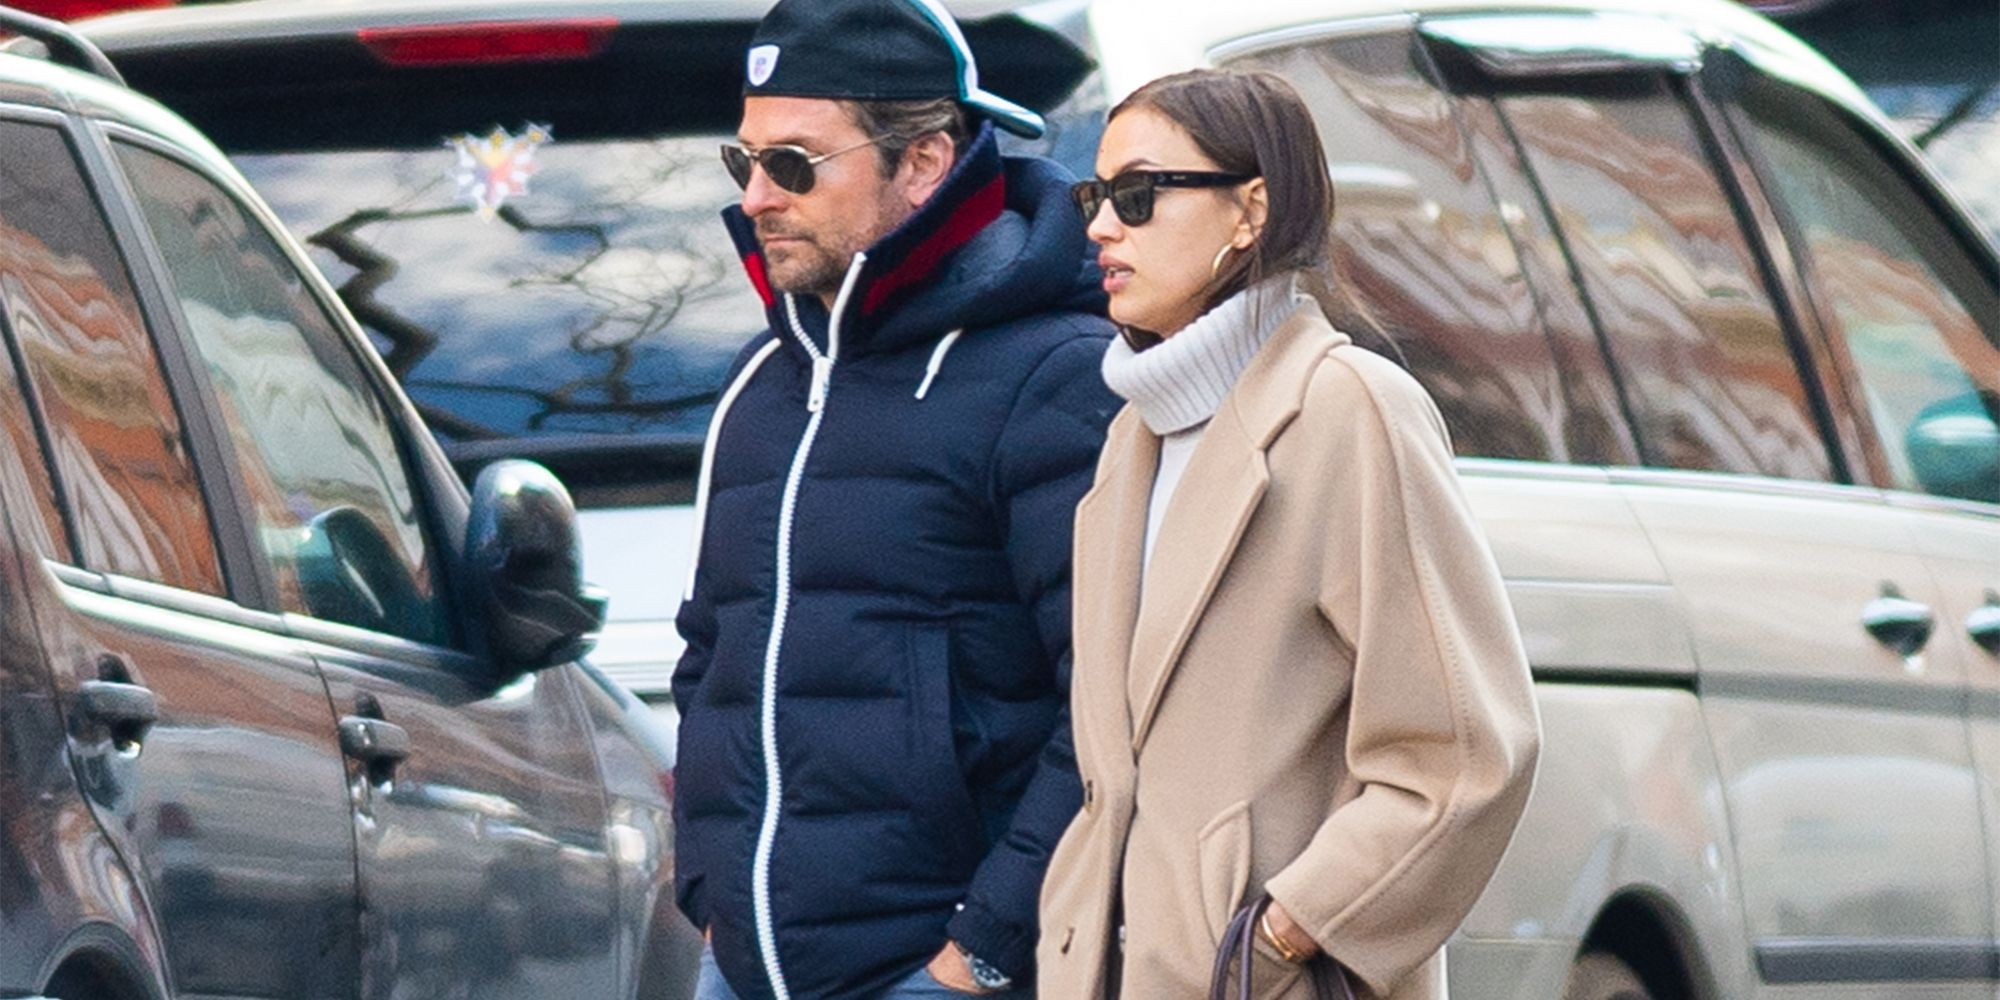 EXCLUSIVE: Bradley Cooper and Irina Shayk are Spotted Having Lunch Together in New York City.